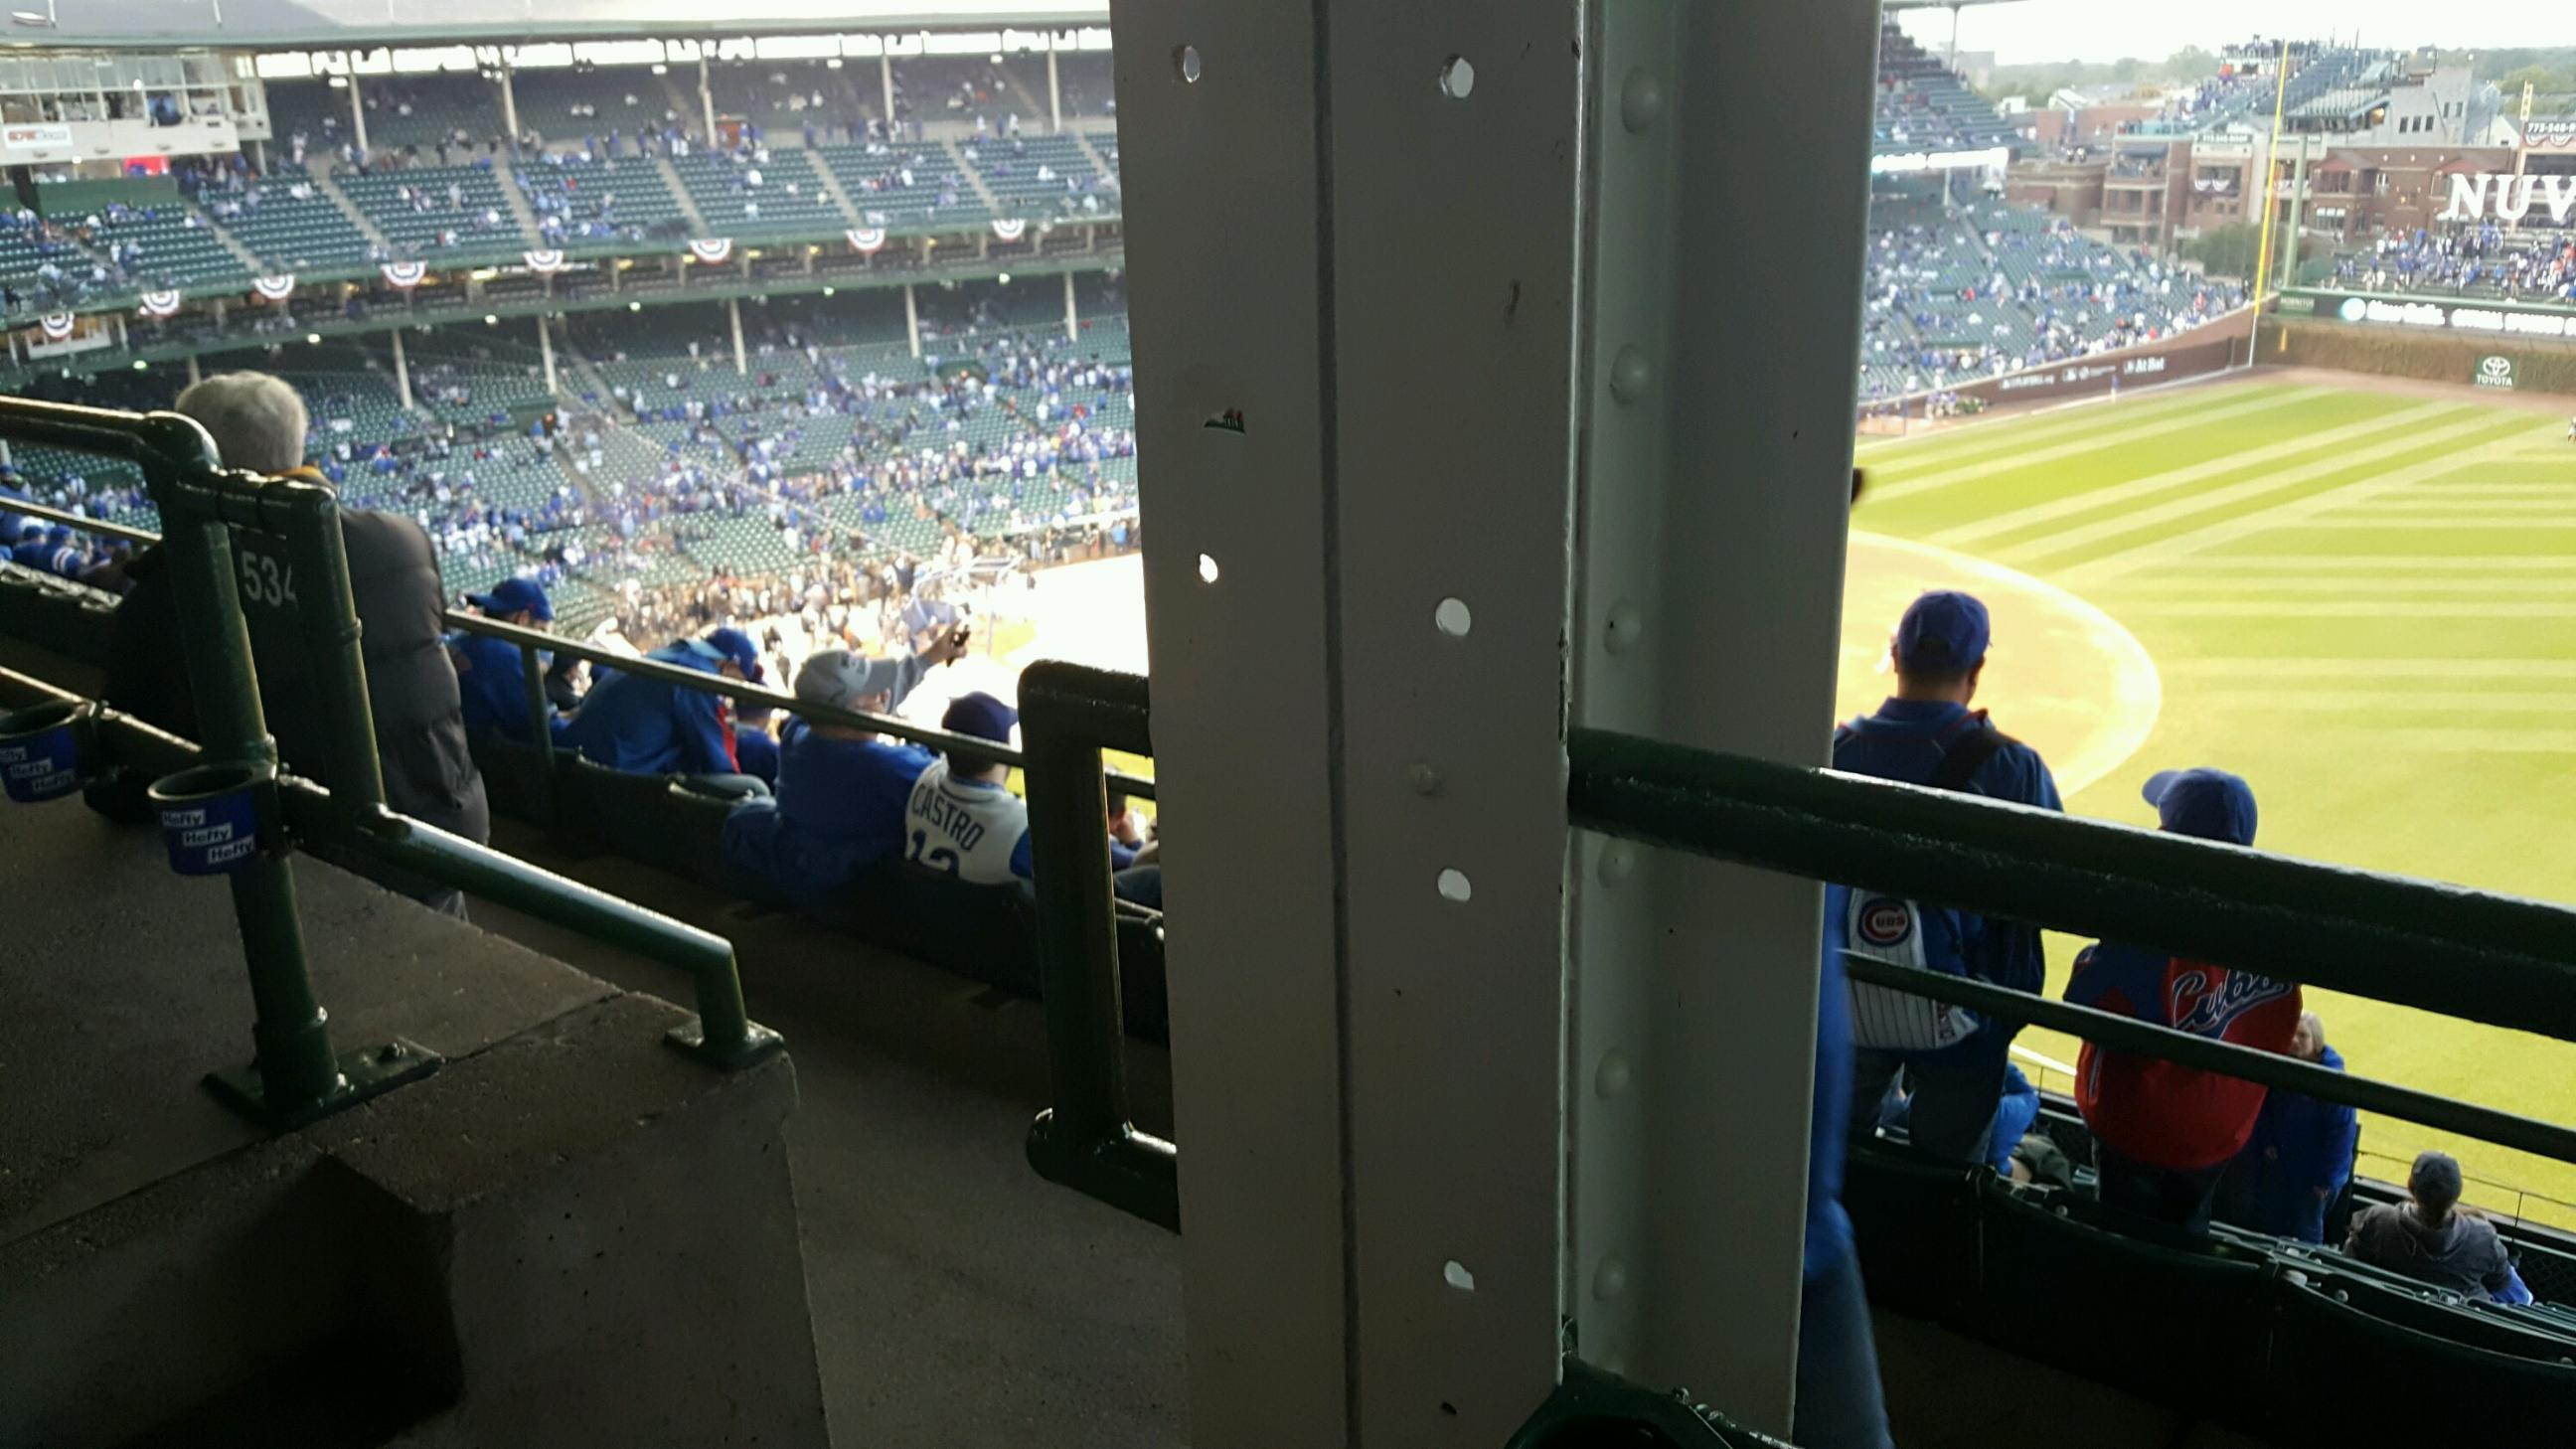 Wrigley Field Section 534 Row 1 Seat 1,2